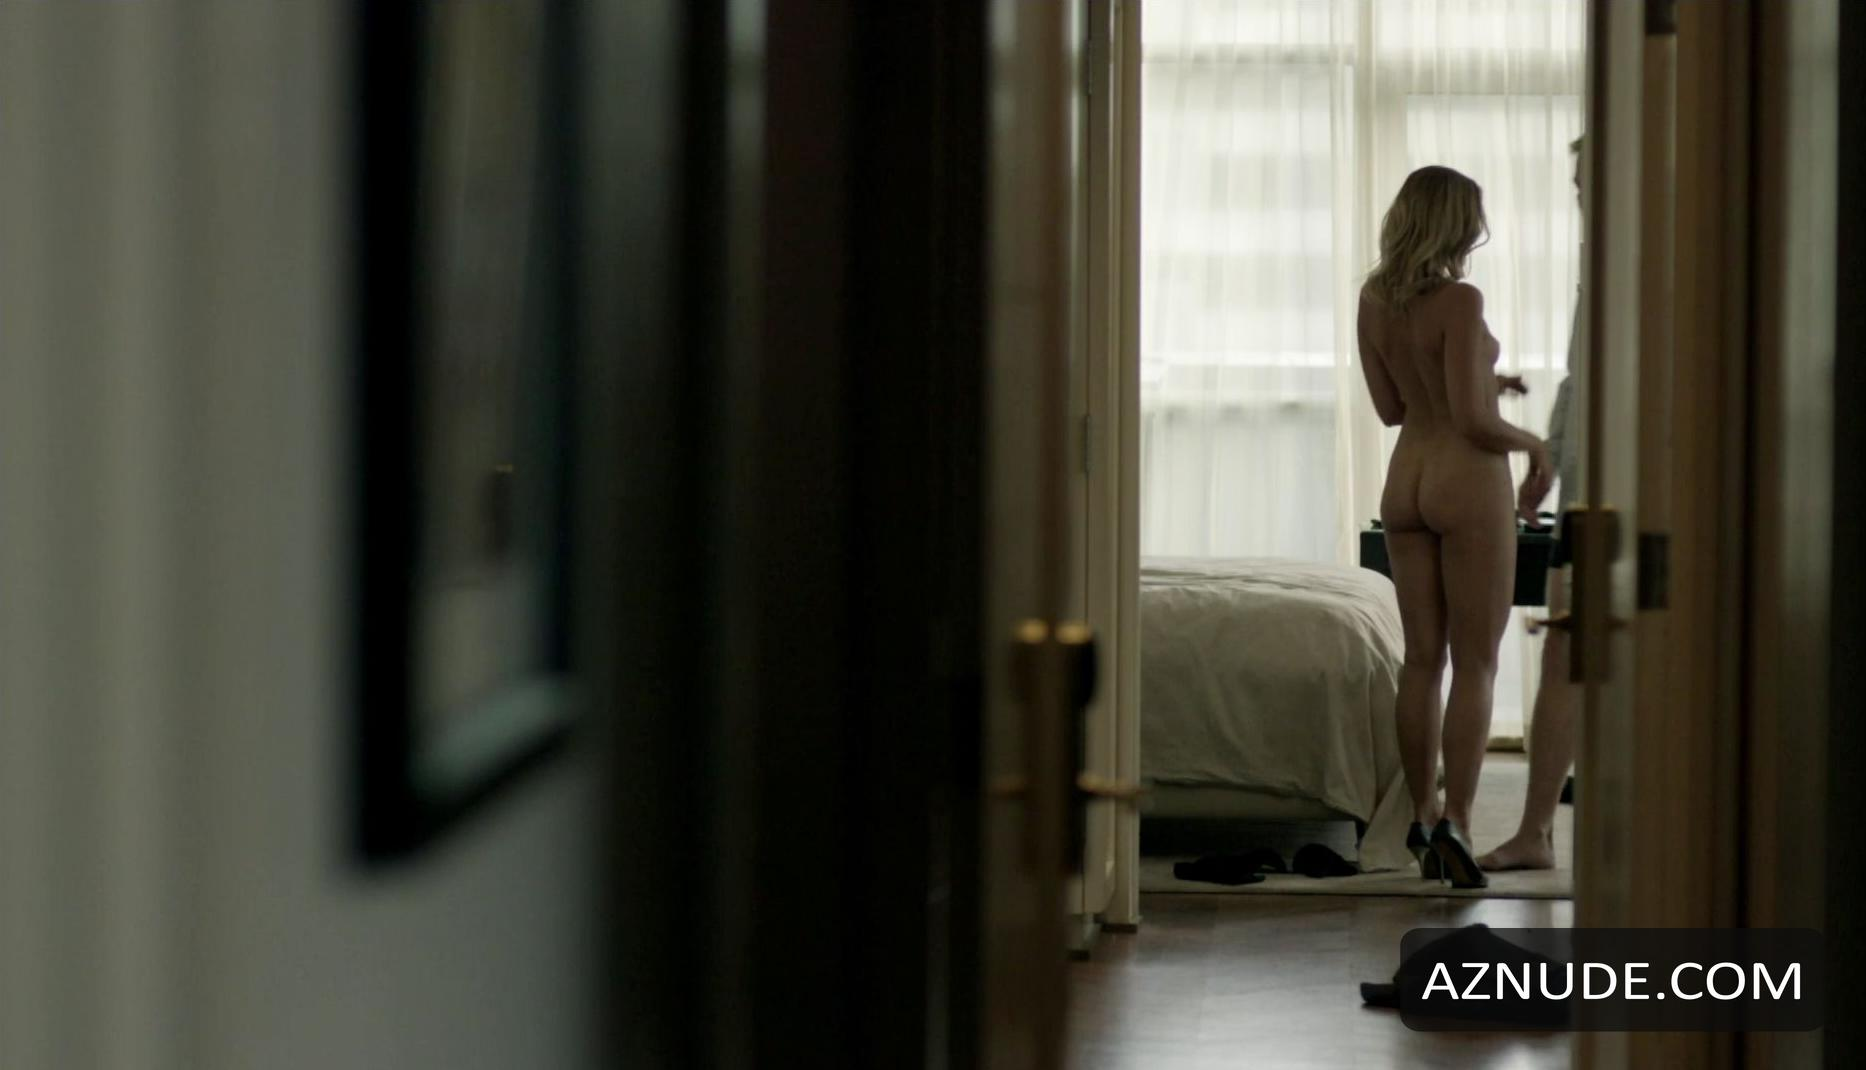 Alexandra daddario full frontal sex scene in true detective - 3 part 8